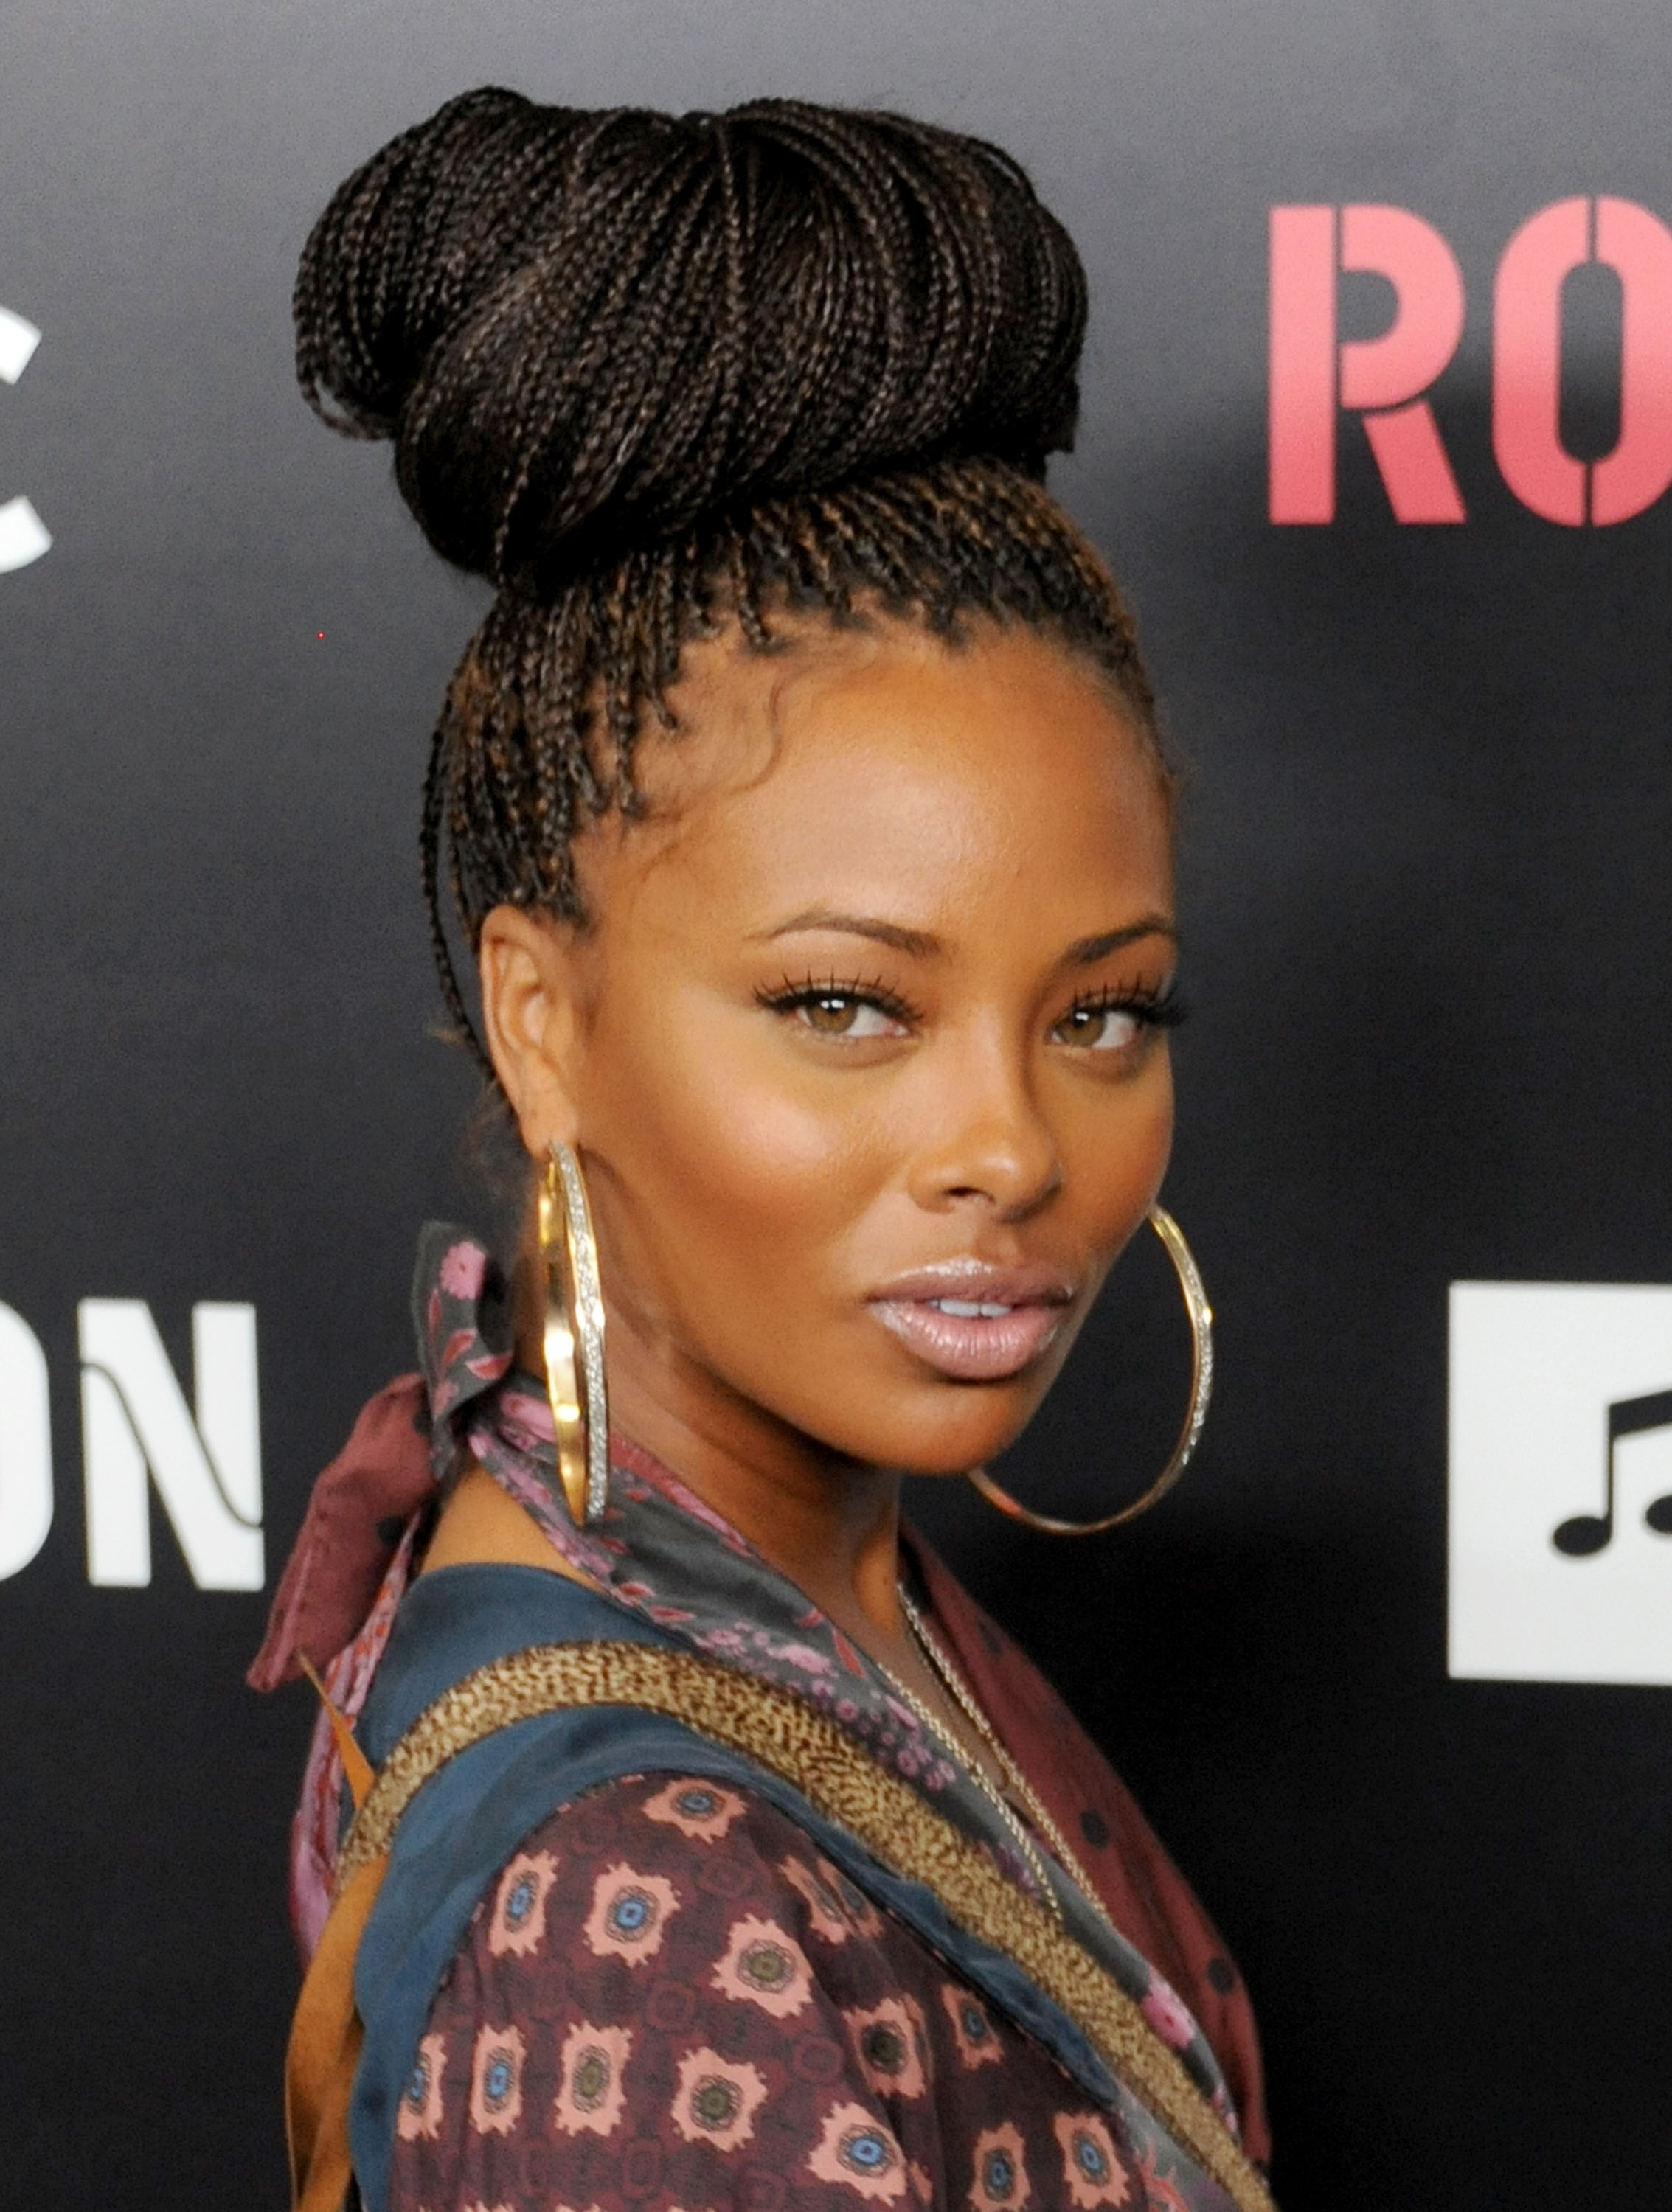 Beyonce and other Celebs Poetic Justice Braids - Hype Hair